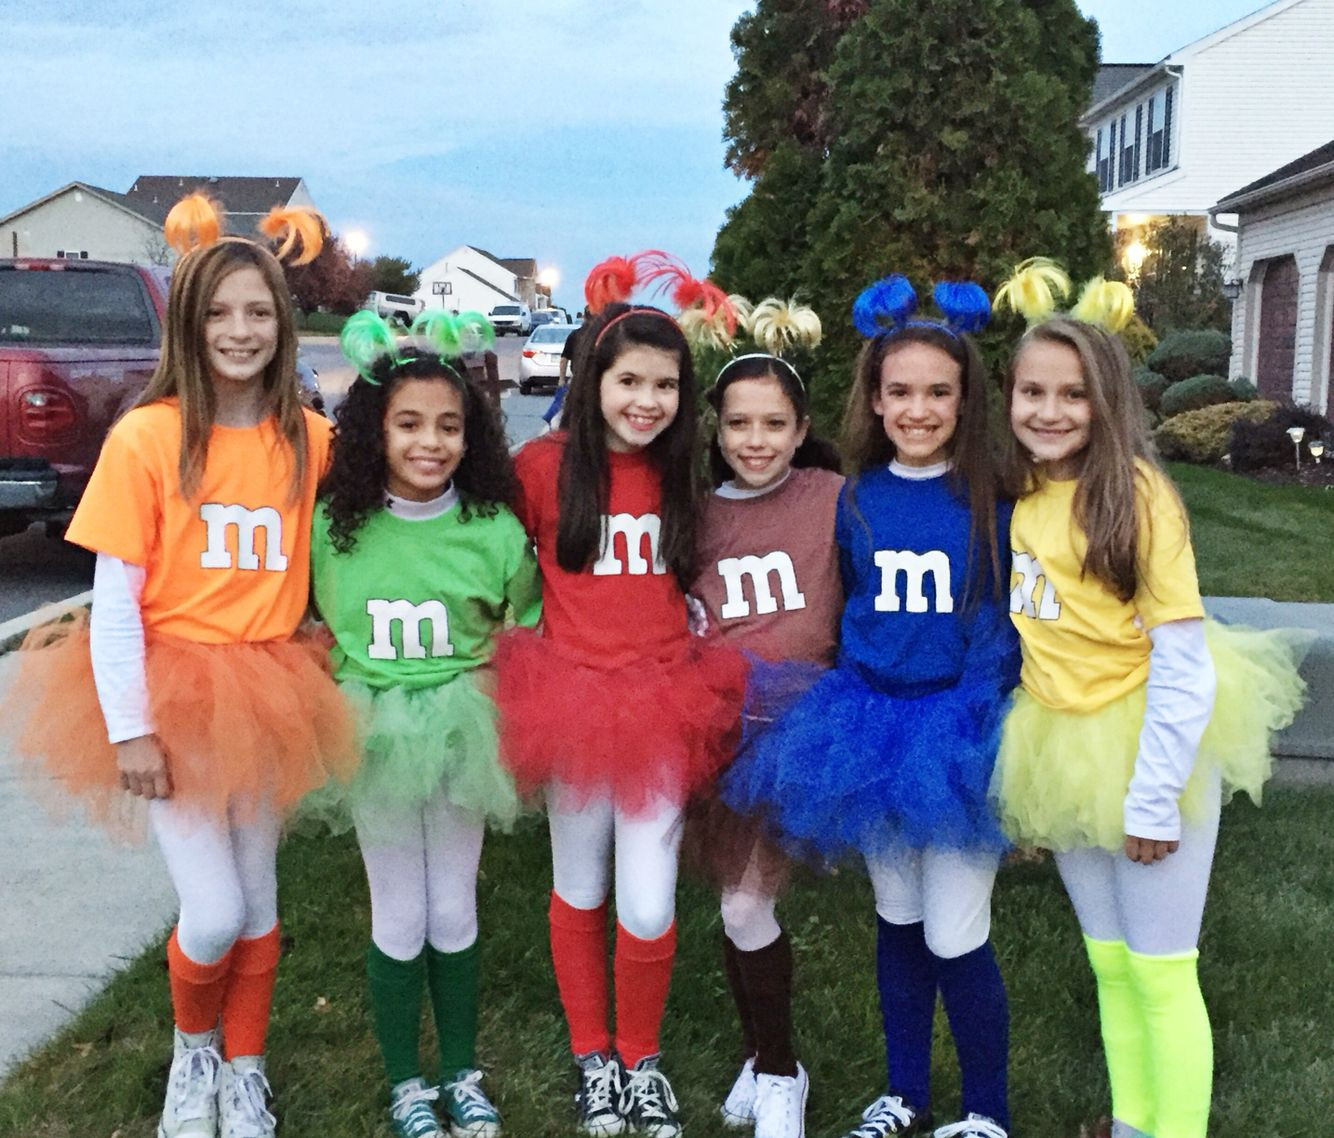 Best ideas about DIY M&M Costume . Save or Pin DIY M&M costume kostüme in 2019 Now.